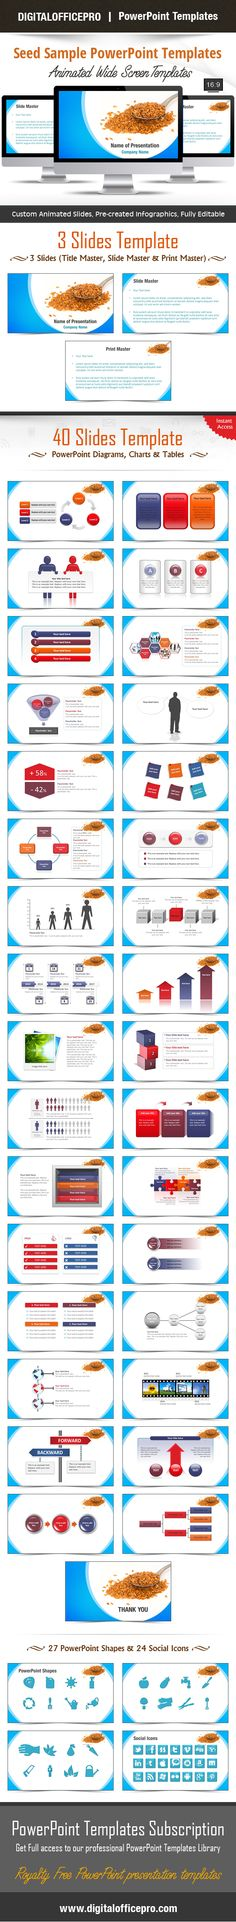 Impress and Engage your audience with Seed Sample PowerPoint Template and Seed Sample PowerPoint Backgrounds from DigitalOfficePro. Each template comes with a set of PowerPoint Diagrams, Charts & Shapes and are available for instant download.